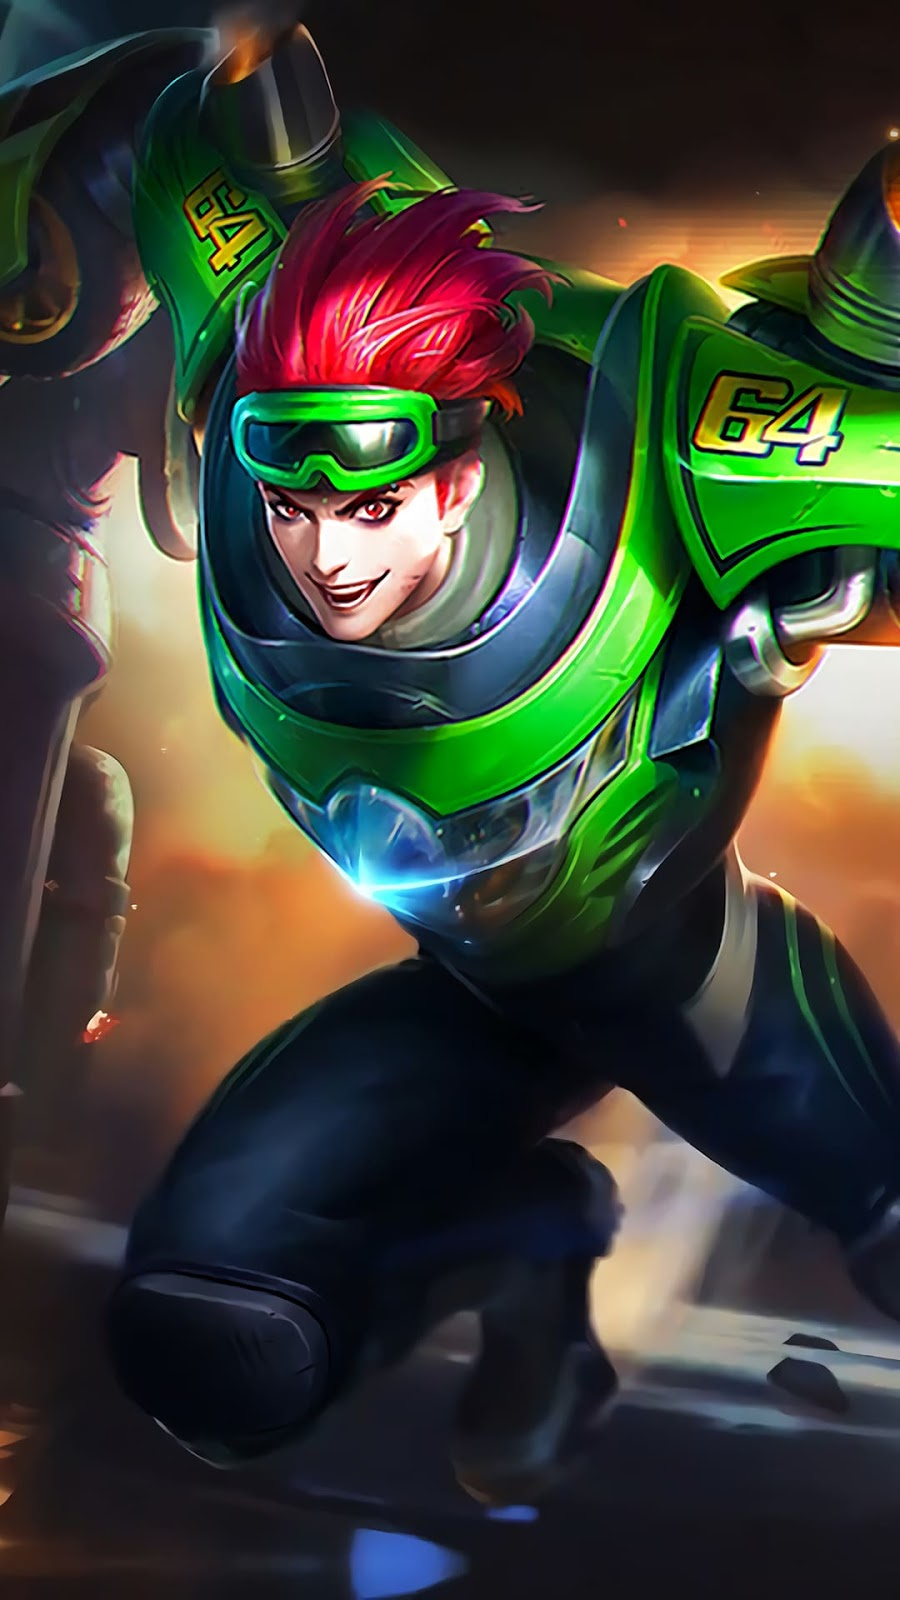 Wallpaper X.Borg Moto Drifter Skin Mobile Legends HD for Android and iOS